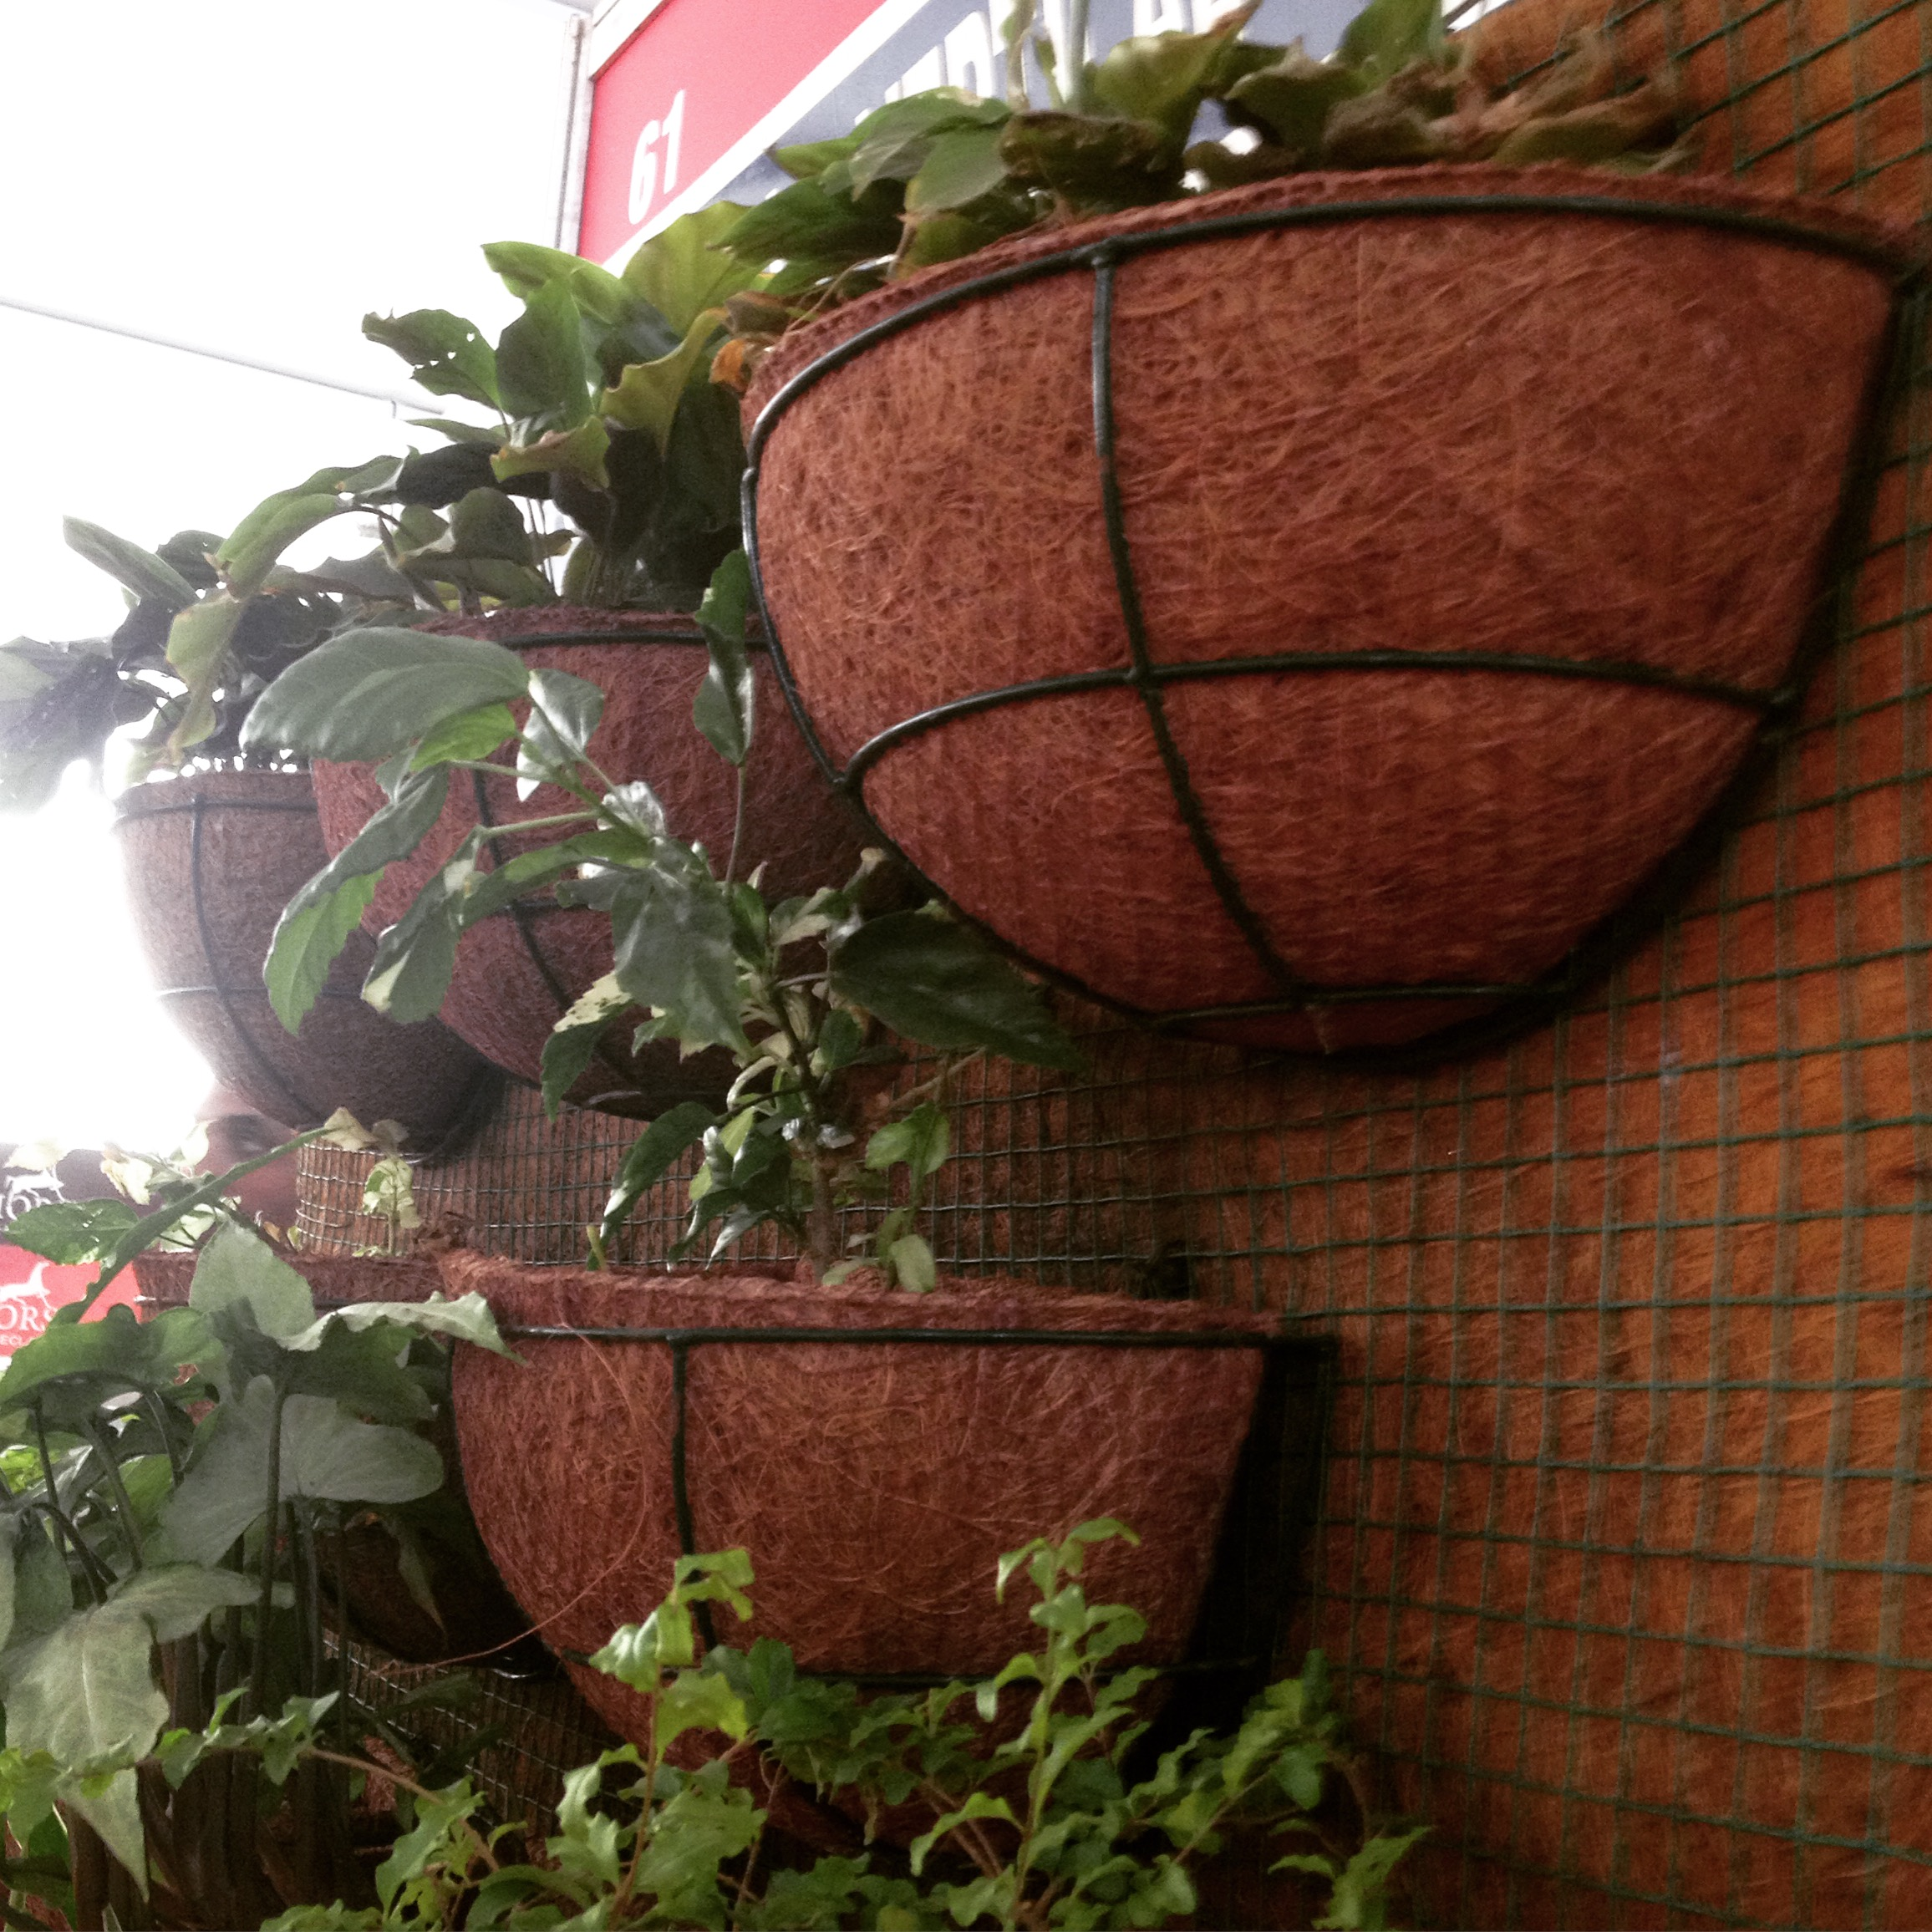 Filecoir flower vases and pots on display during coir kerala 2015 filecoir flower vases and pots on display during coir kerala 2015 alappuzha reviewsmspy